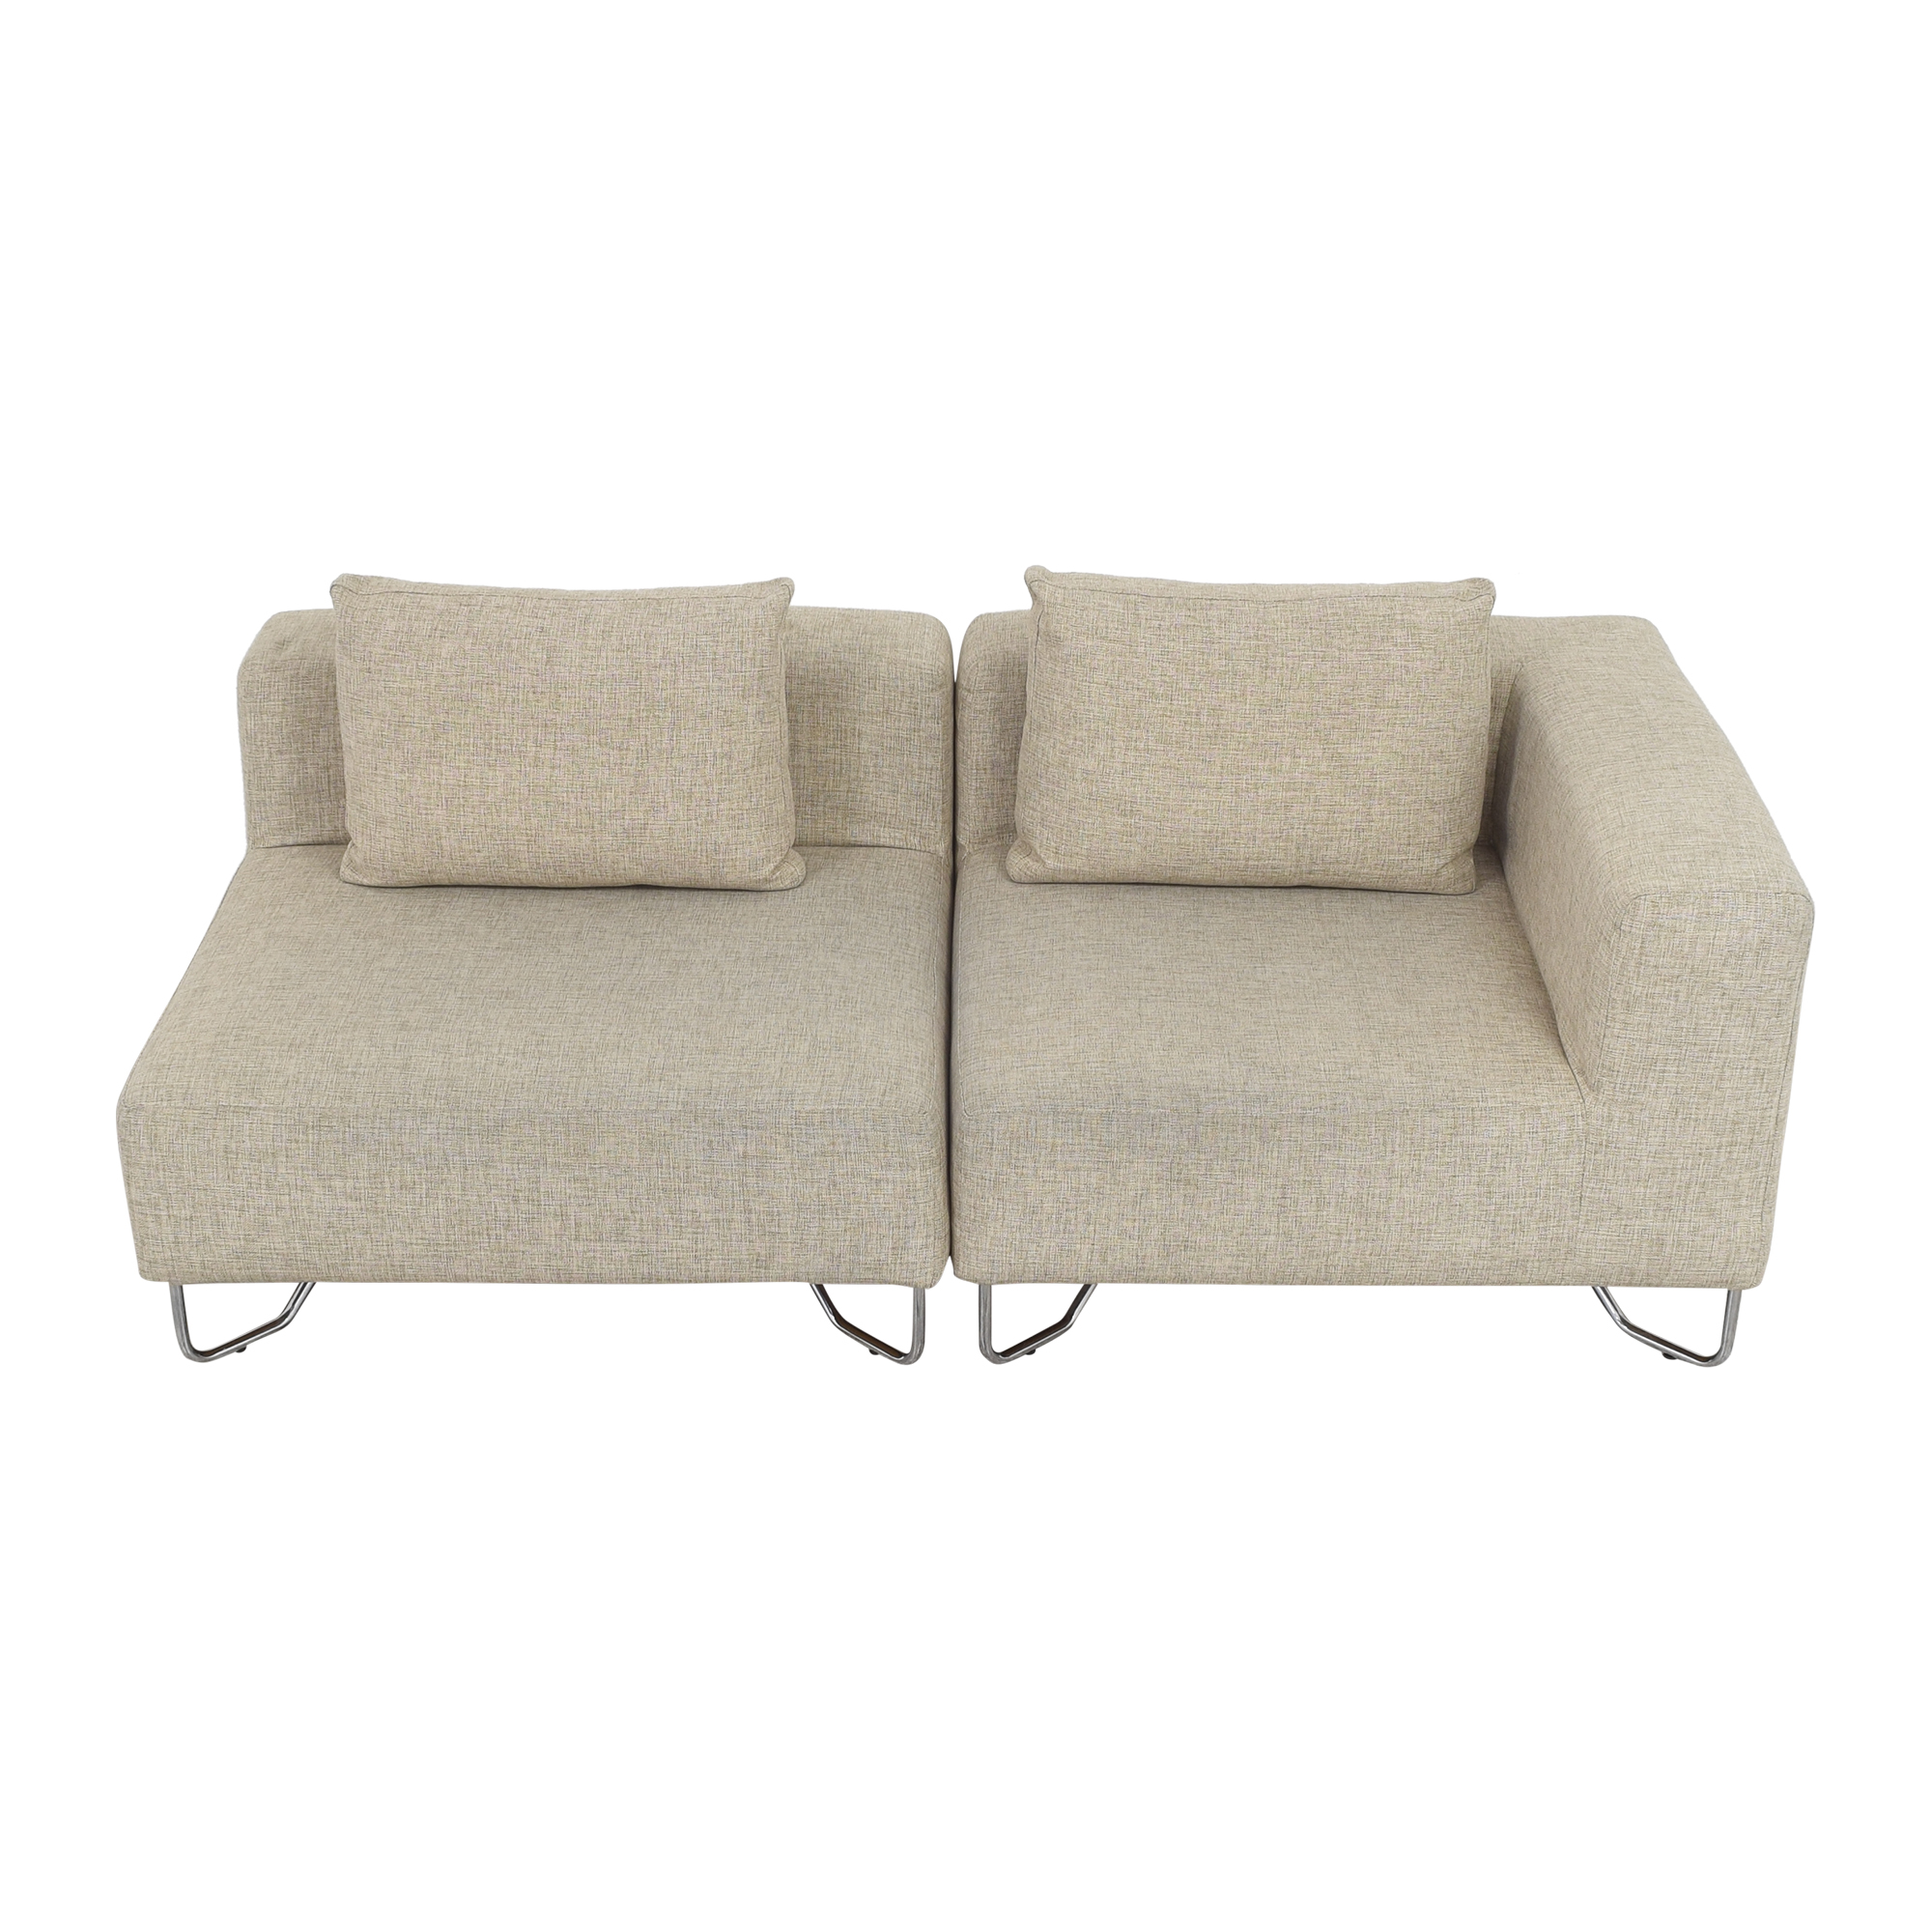 39 off cb2 cb2 lotus two piece sectional sofa sofas